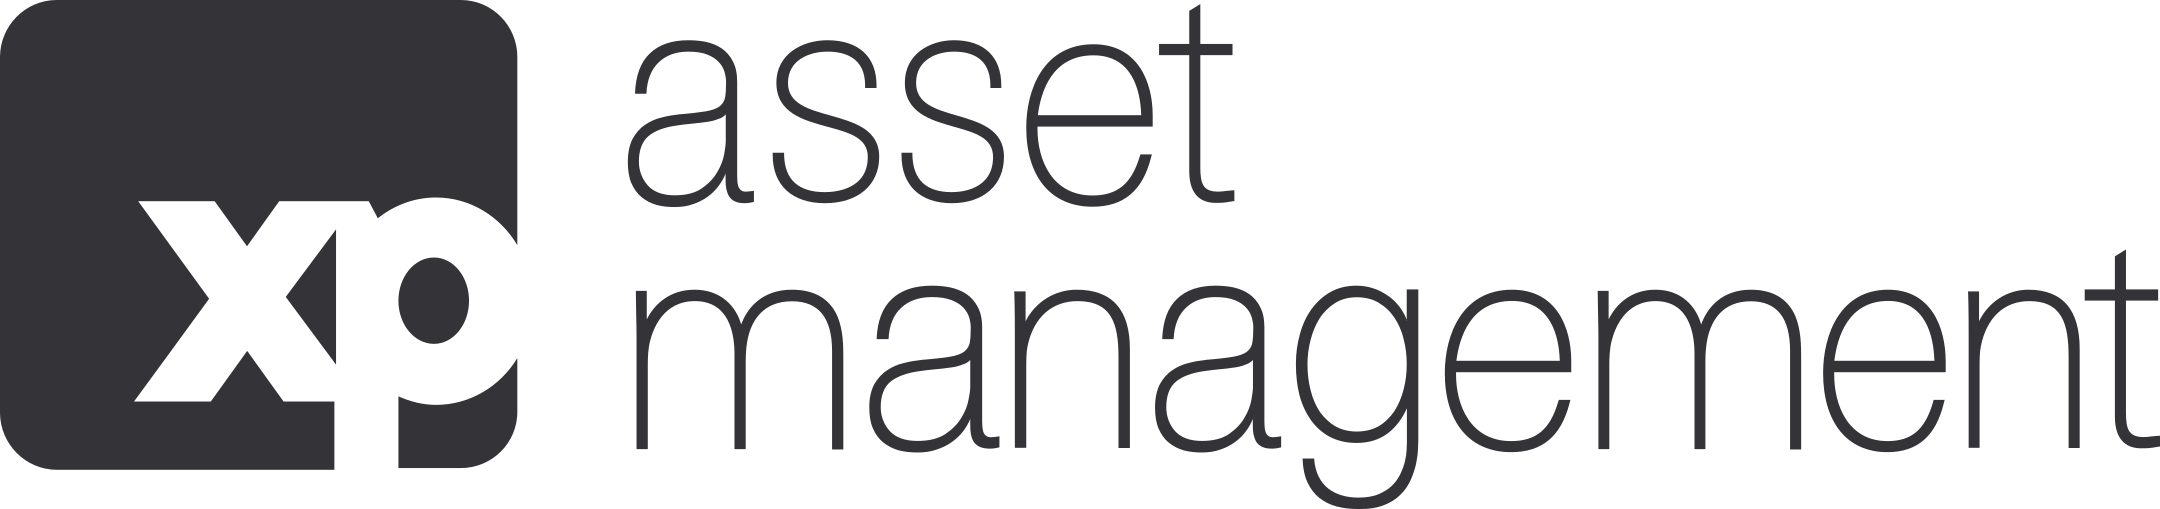 XP Asset Management Logo.